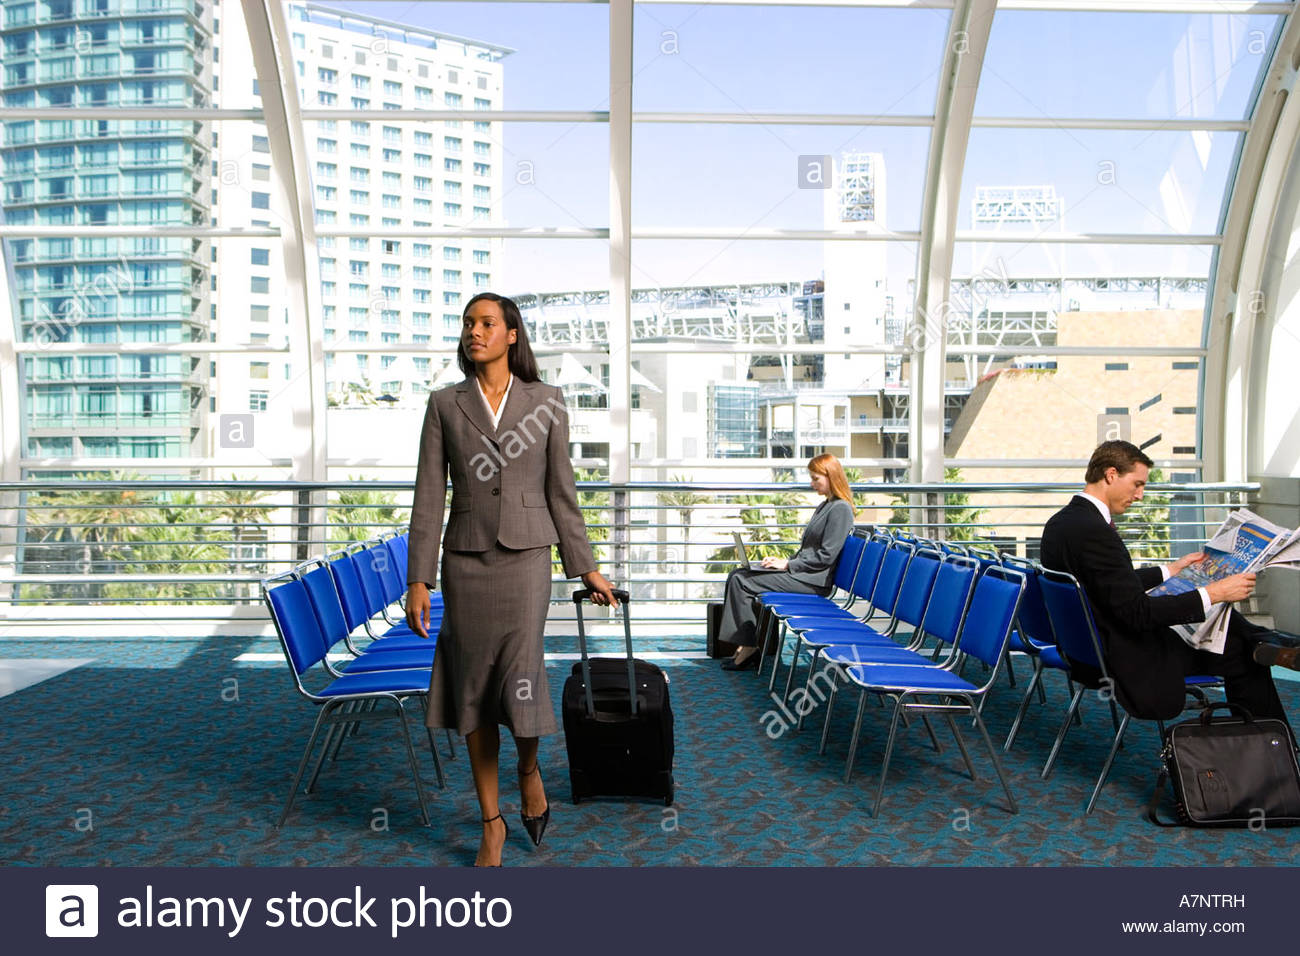 Businesswoman walking in airport departure lounge with luggage in tow businessman reading newspaper - Stock Image